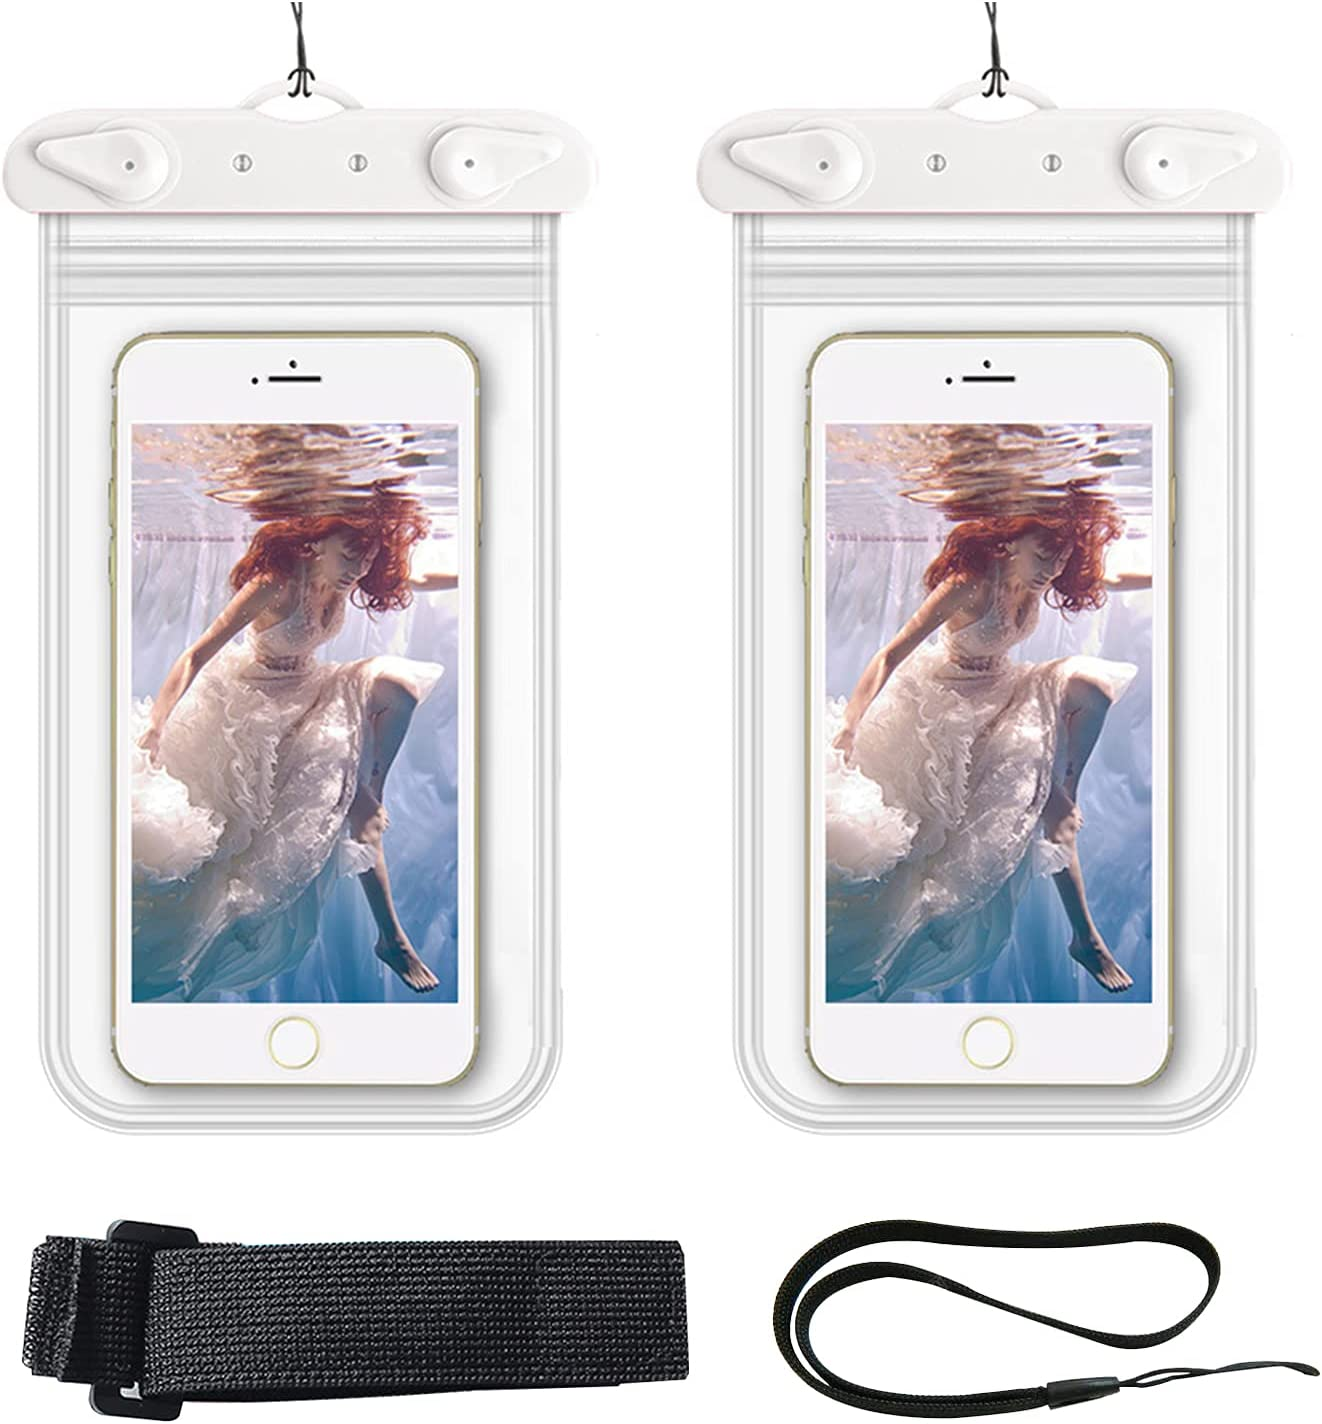 LINGLING 2 Pack Universal Waterproof Case, Cellphone Dry Bag Underwater Case for iPhone 12 Pro Max 11 Pro Max XS Max XR X 8 7 Samsung Galaxy s10/s9 Waterproof Phone Pouch, Up to 6.5